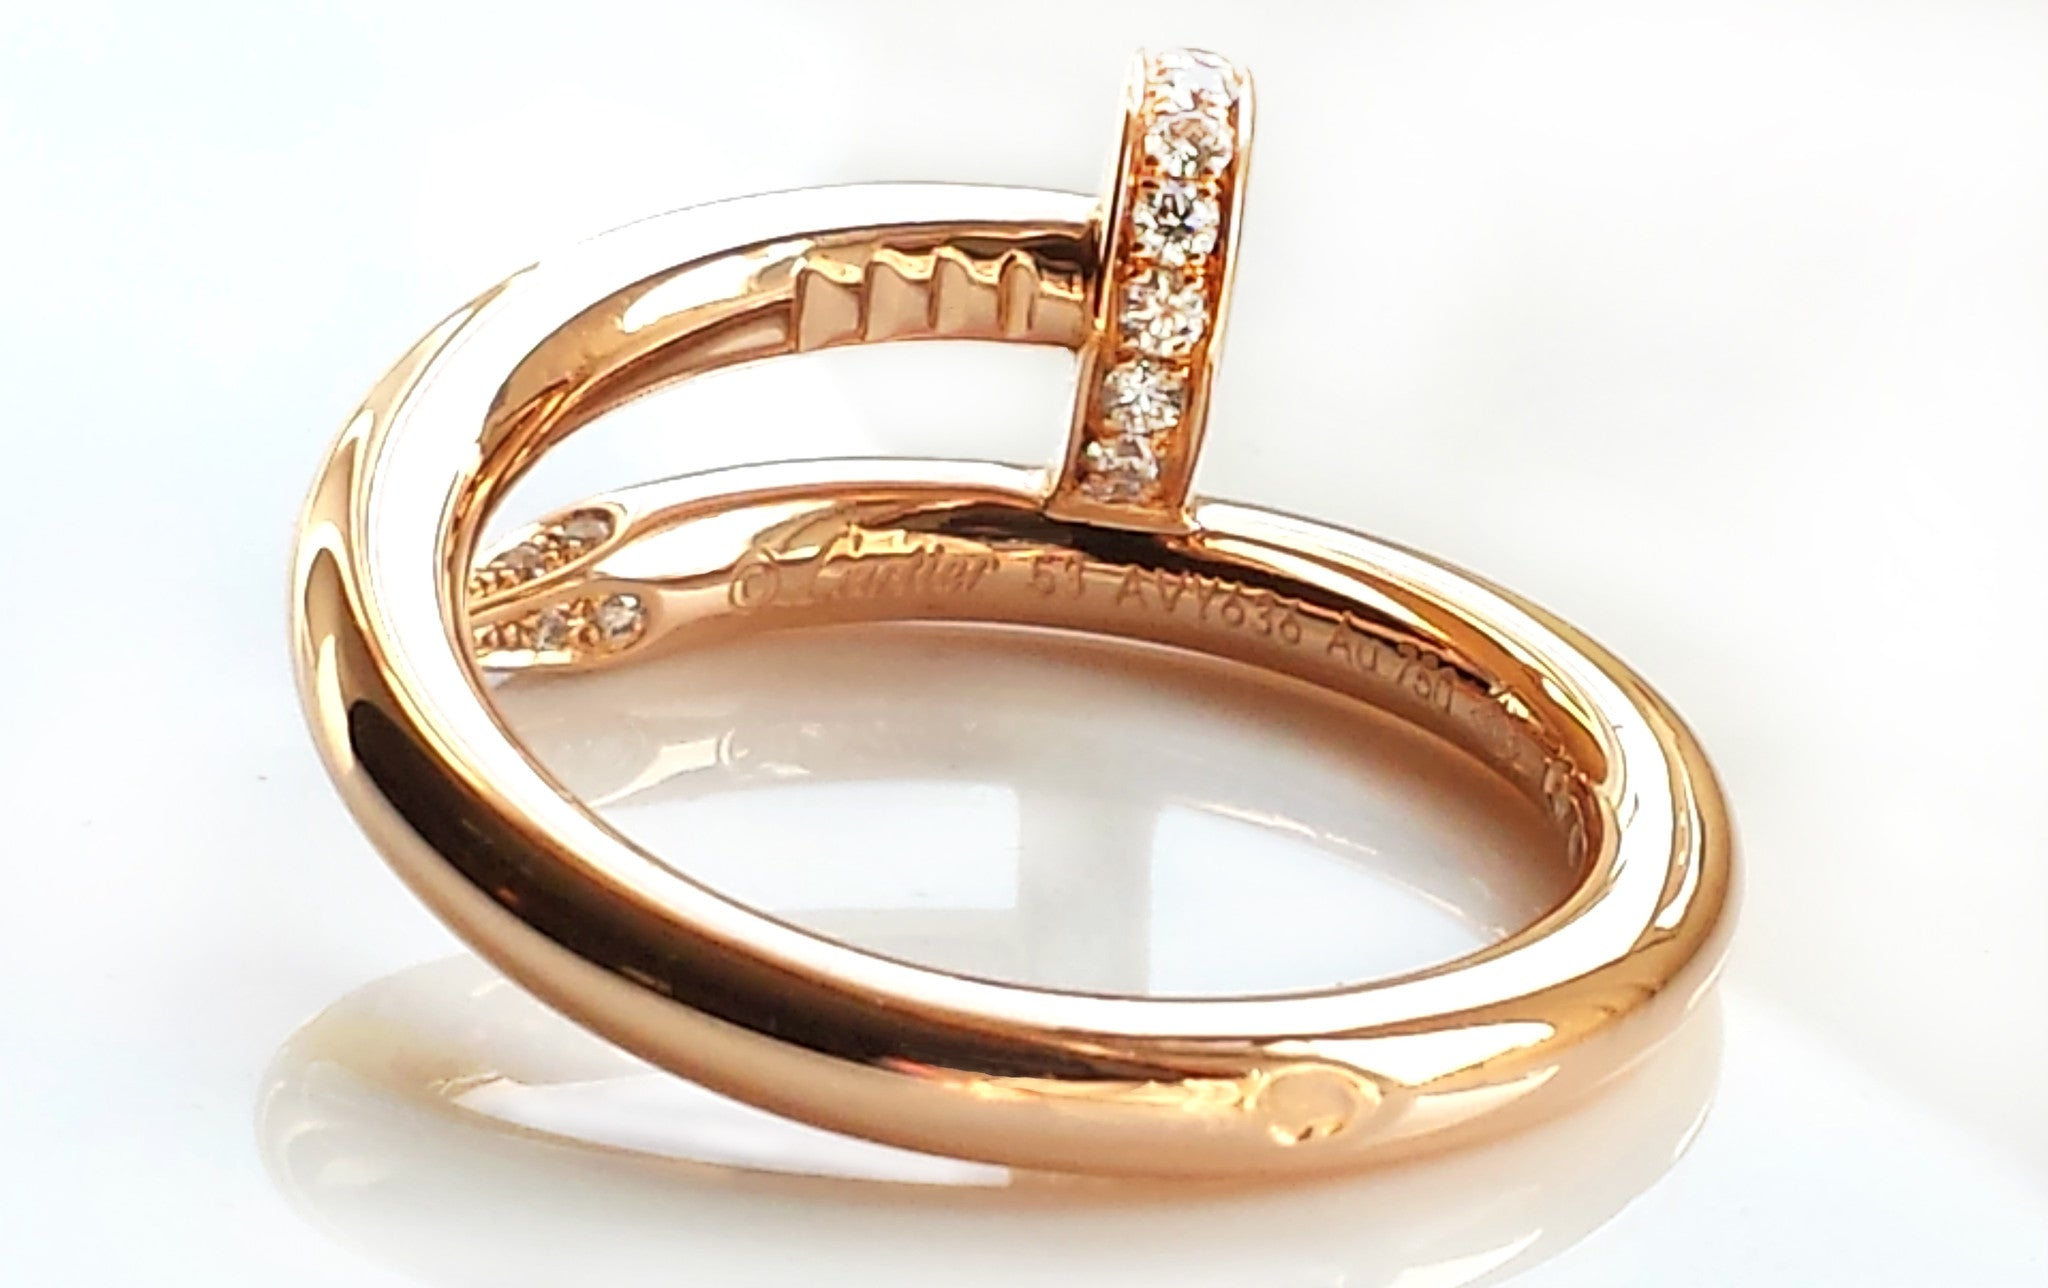 22bb49011b7ce Cartier 18k Rose / Pink Gold & Diamond 'Juste Un Clou' Ring, Size 53